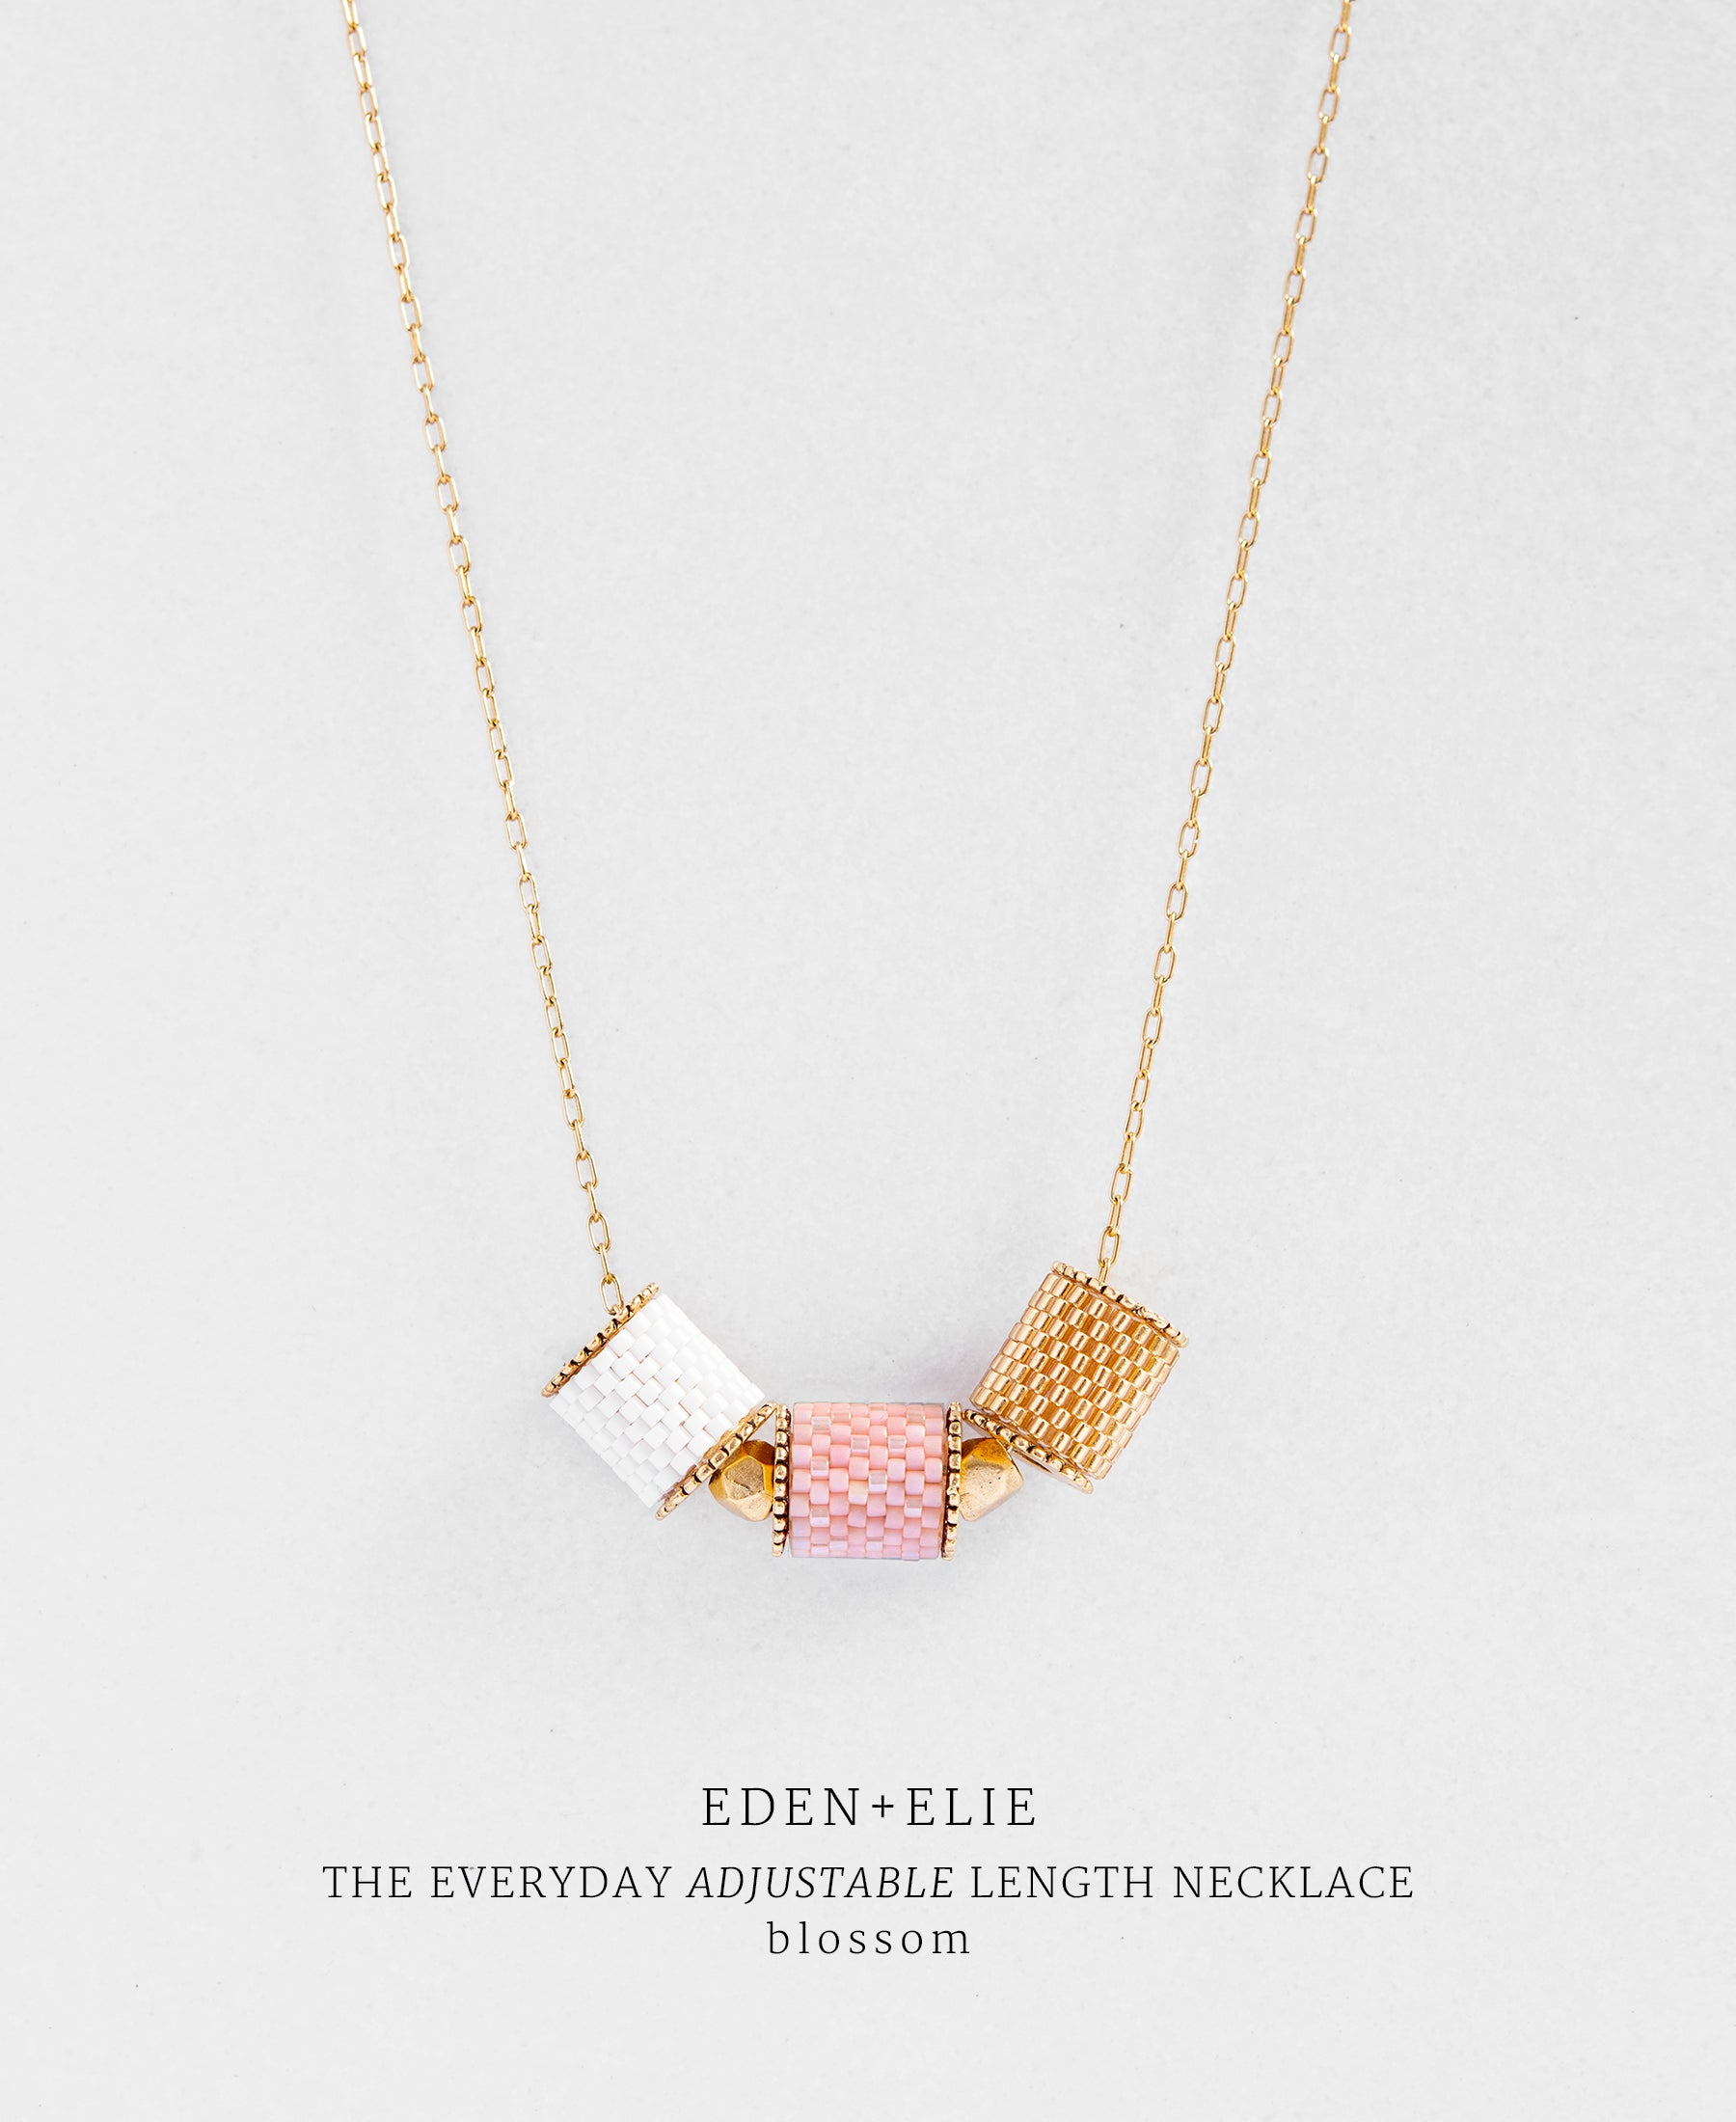 EDEN + ELIE Everyday adjustable length necklace - blossom pink